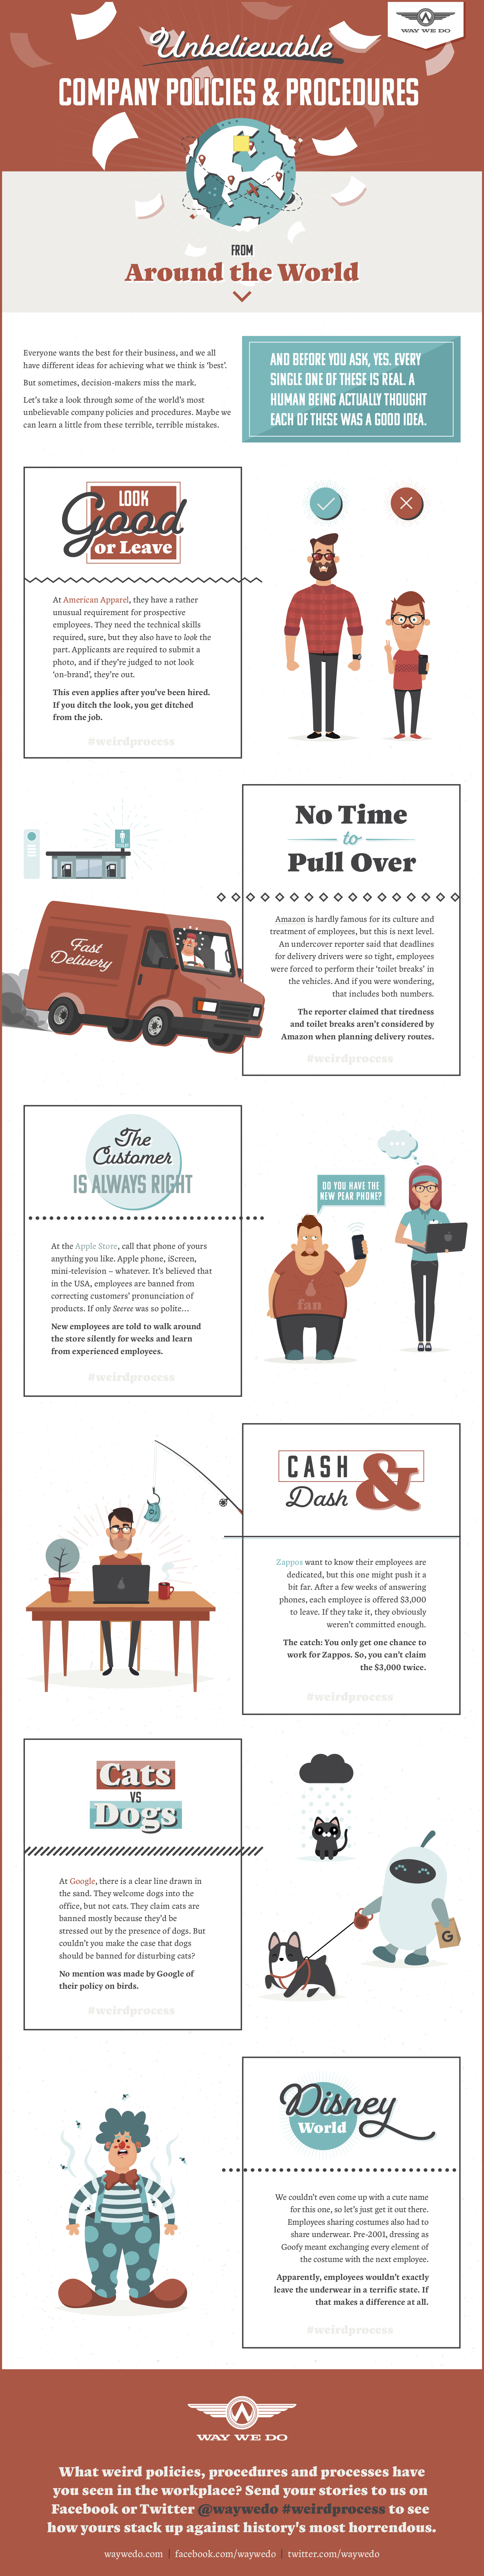 Unbelievable Company Policies and Procedures From Around The World [Infographic]